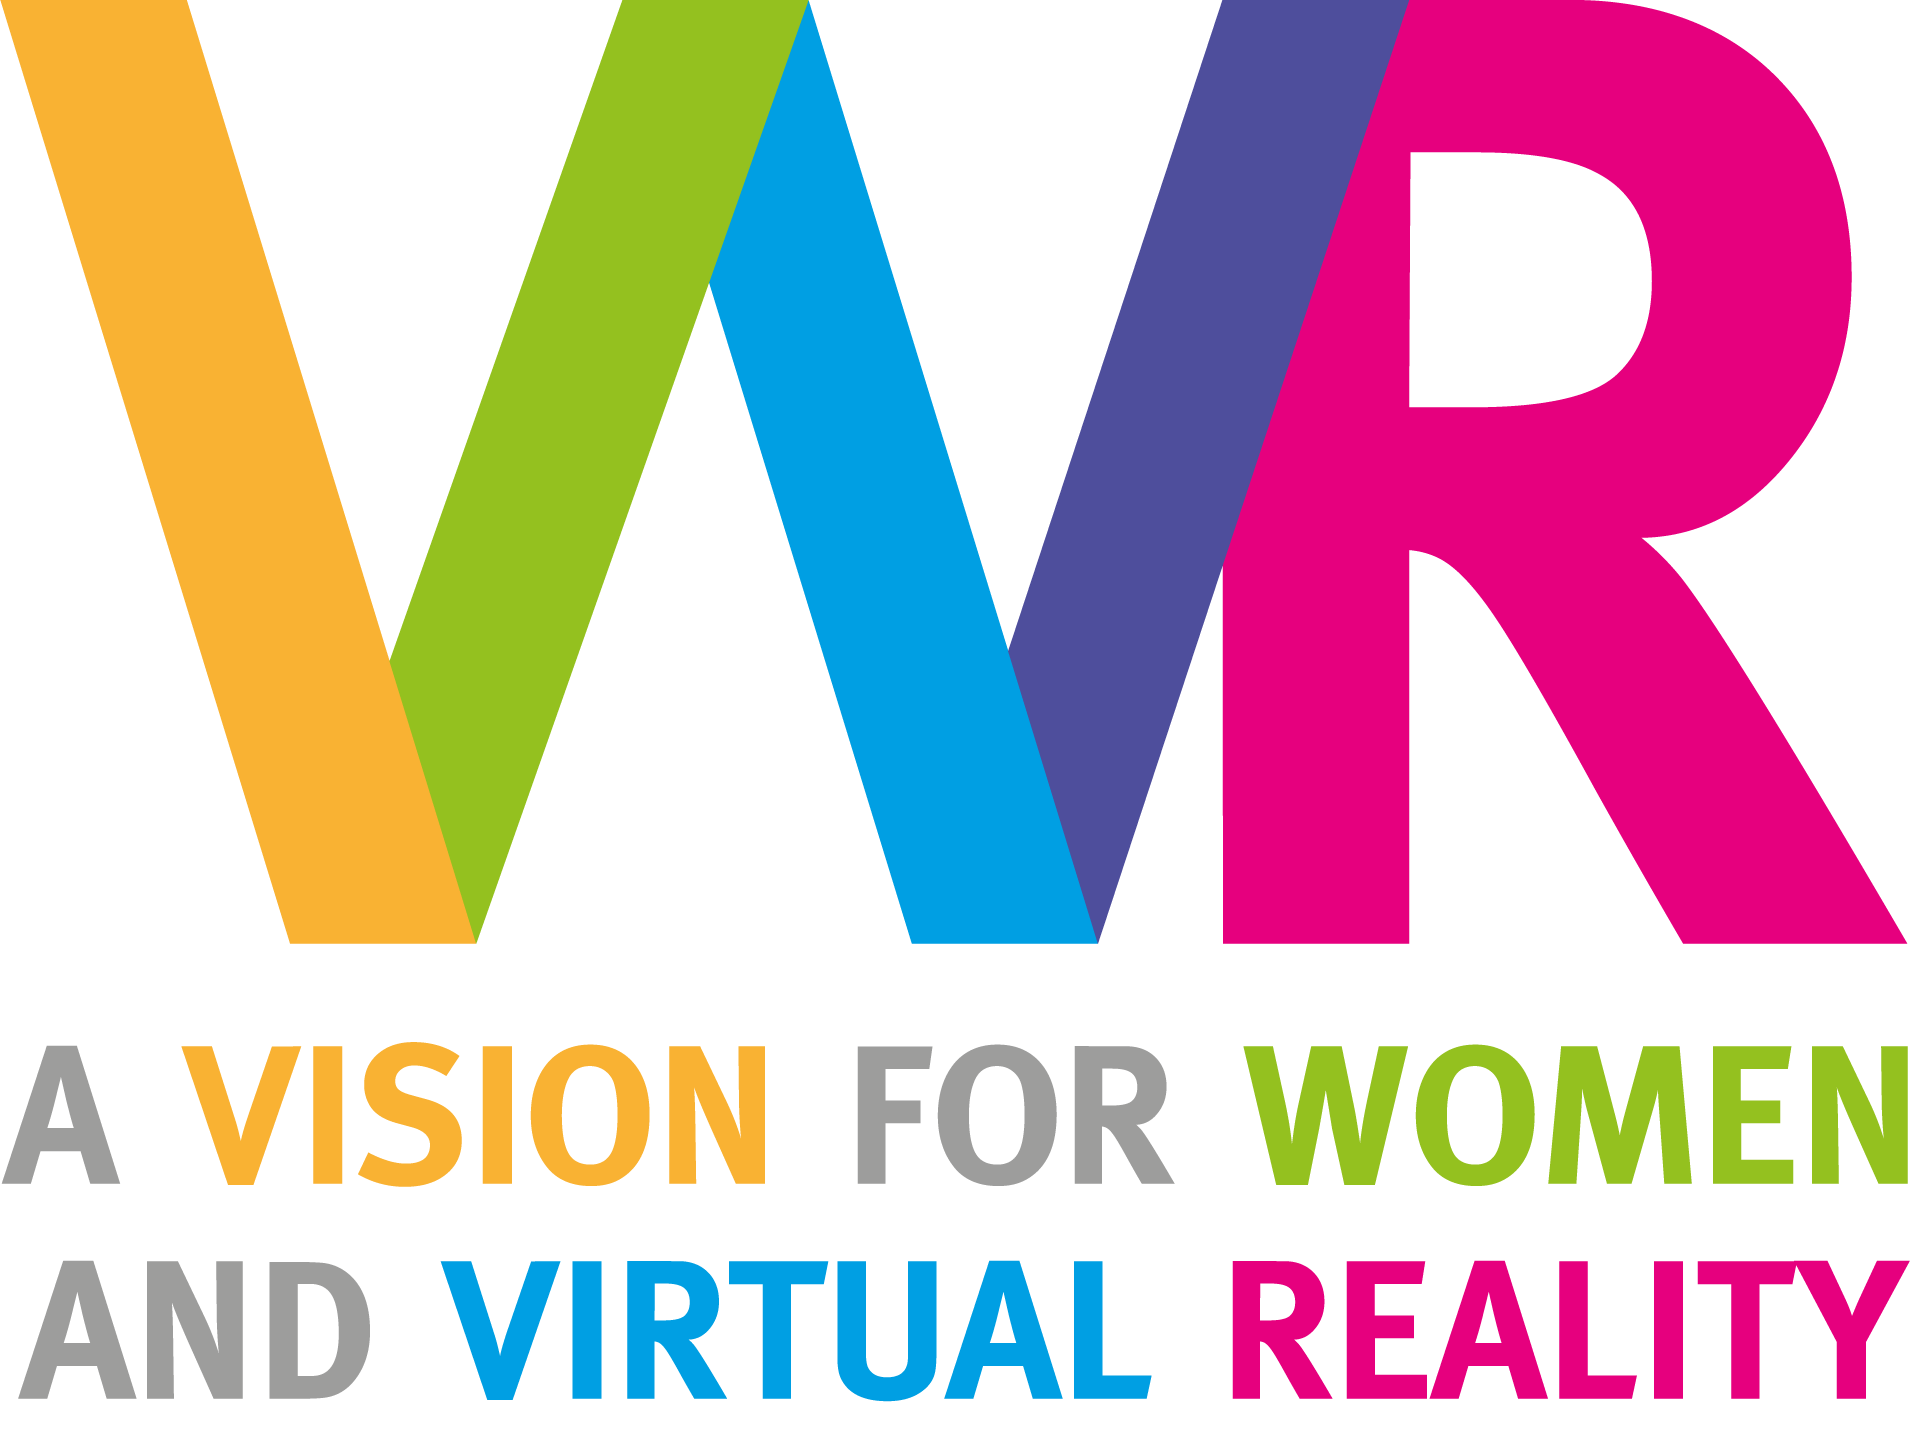 A Vision for Women and Virtual Reality